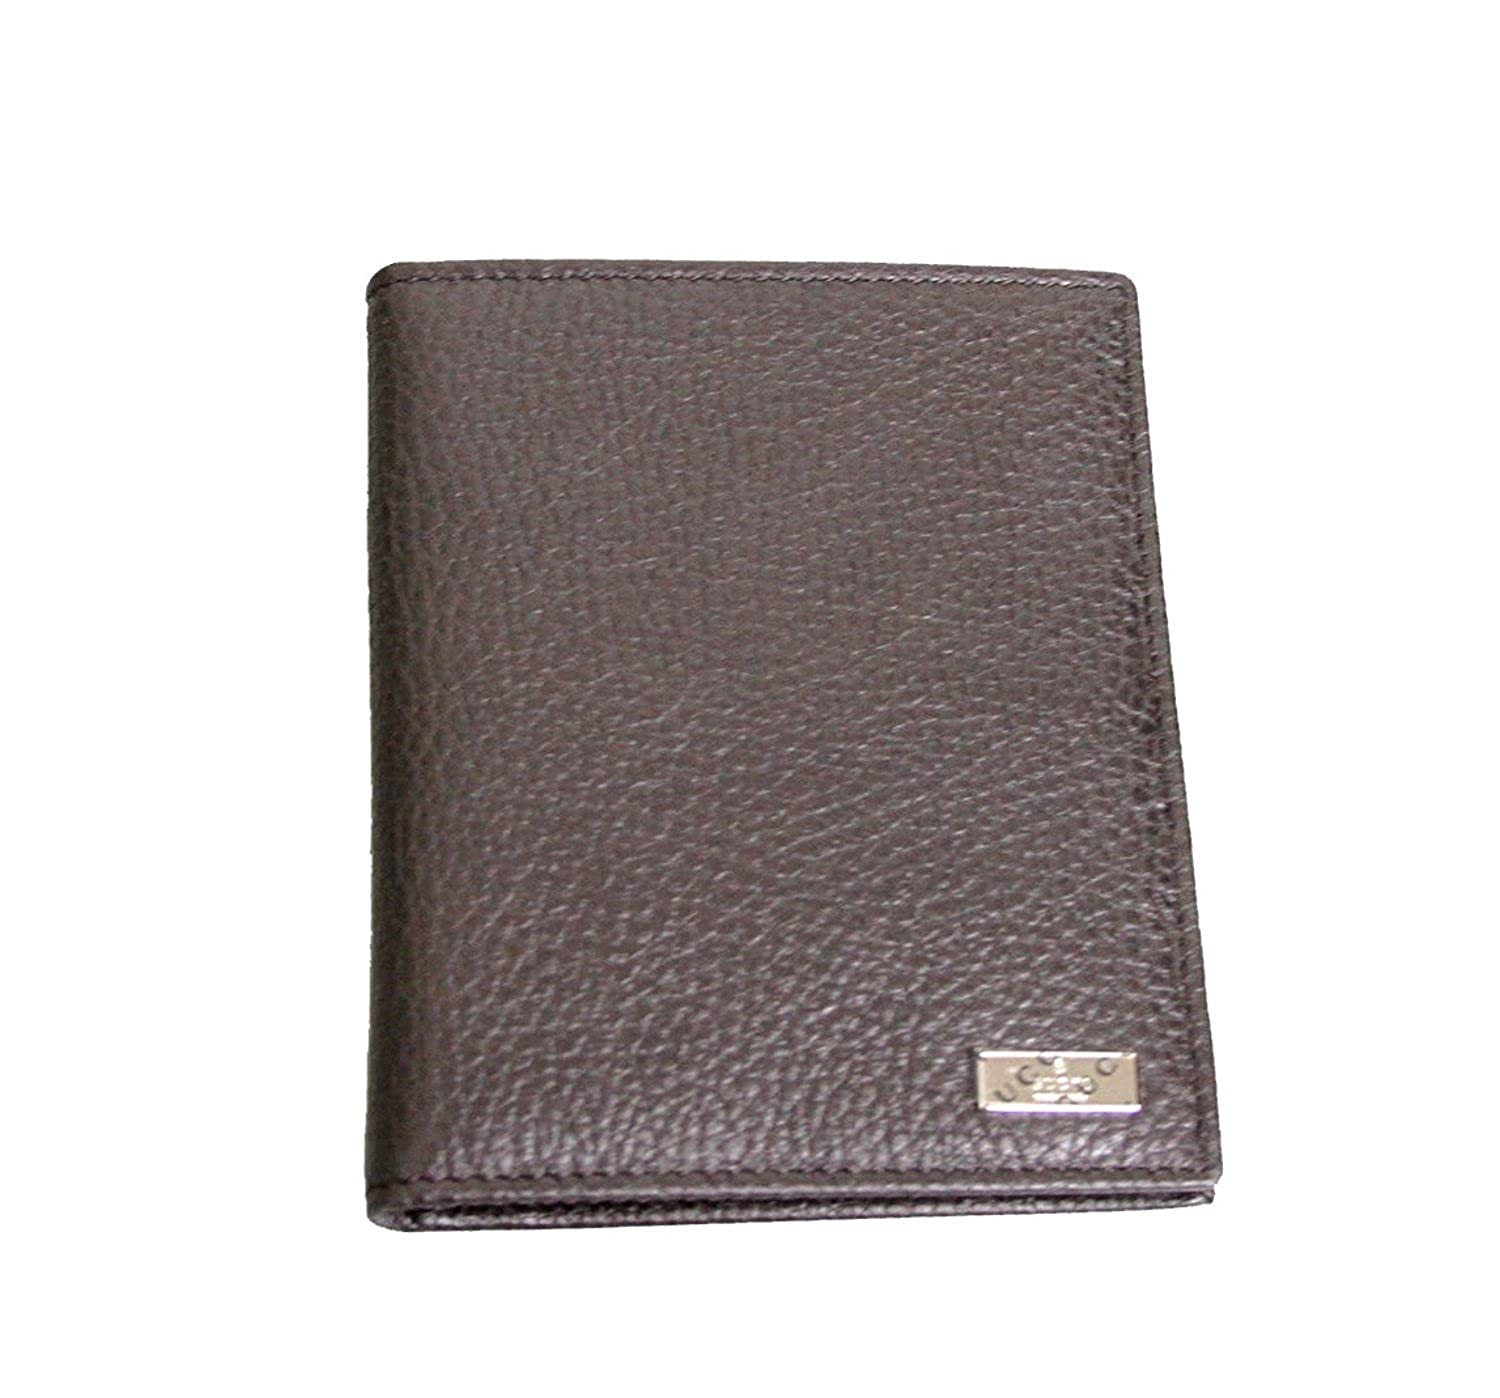 Amazon gucci mens brown leather wallet card holder 217046 amazon gucci mens brown leather wallet card holder 217046 2038 clothing magicingreecefo Images